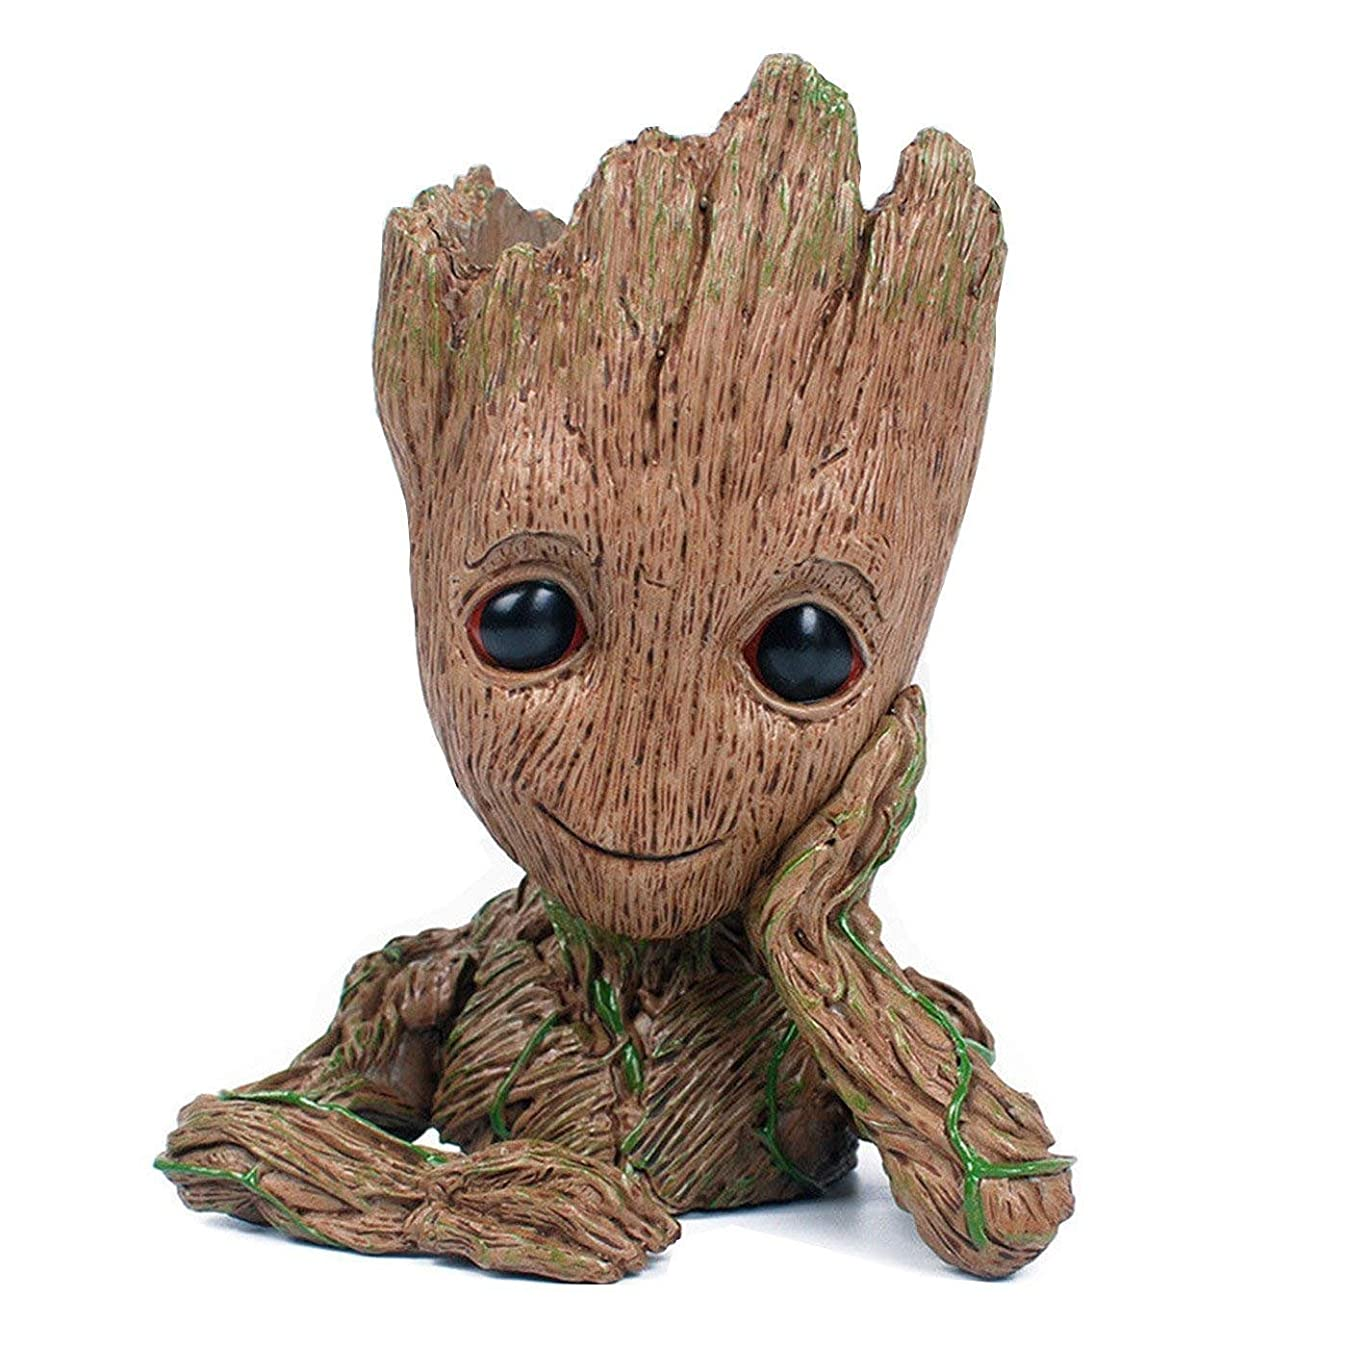 Groot Action Figures Fashion Guardians of The Galaxy Flowerpot Baby Cute Model Toy Pen Pot for Kids (Thinking Tree)